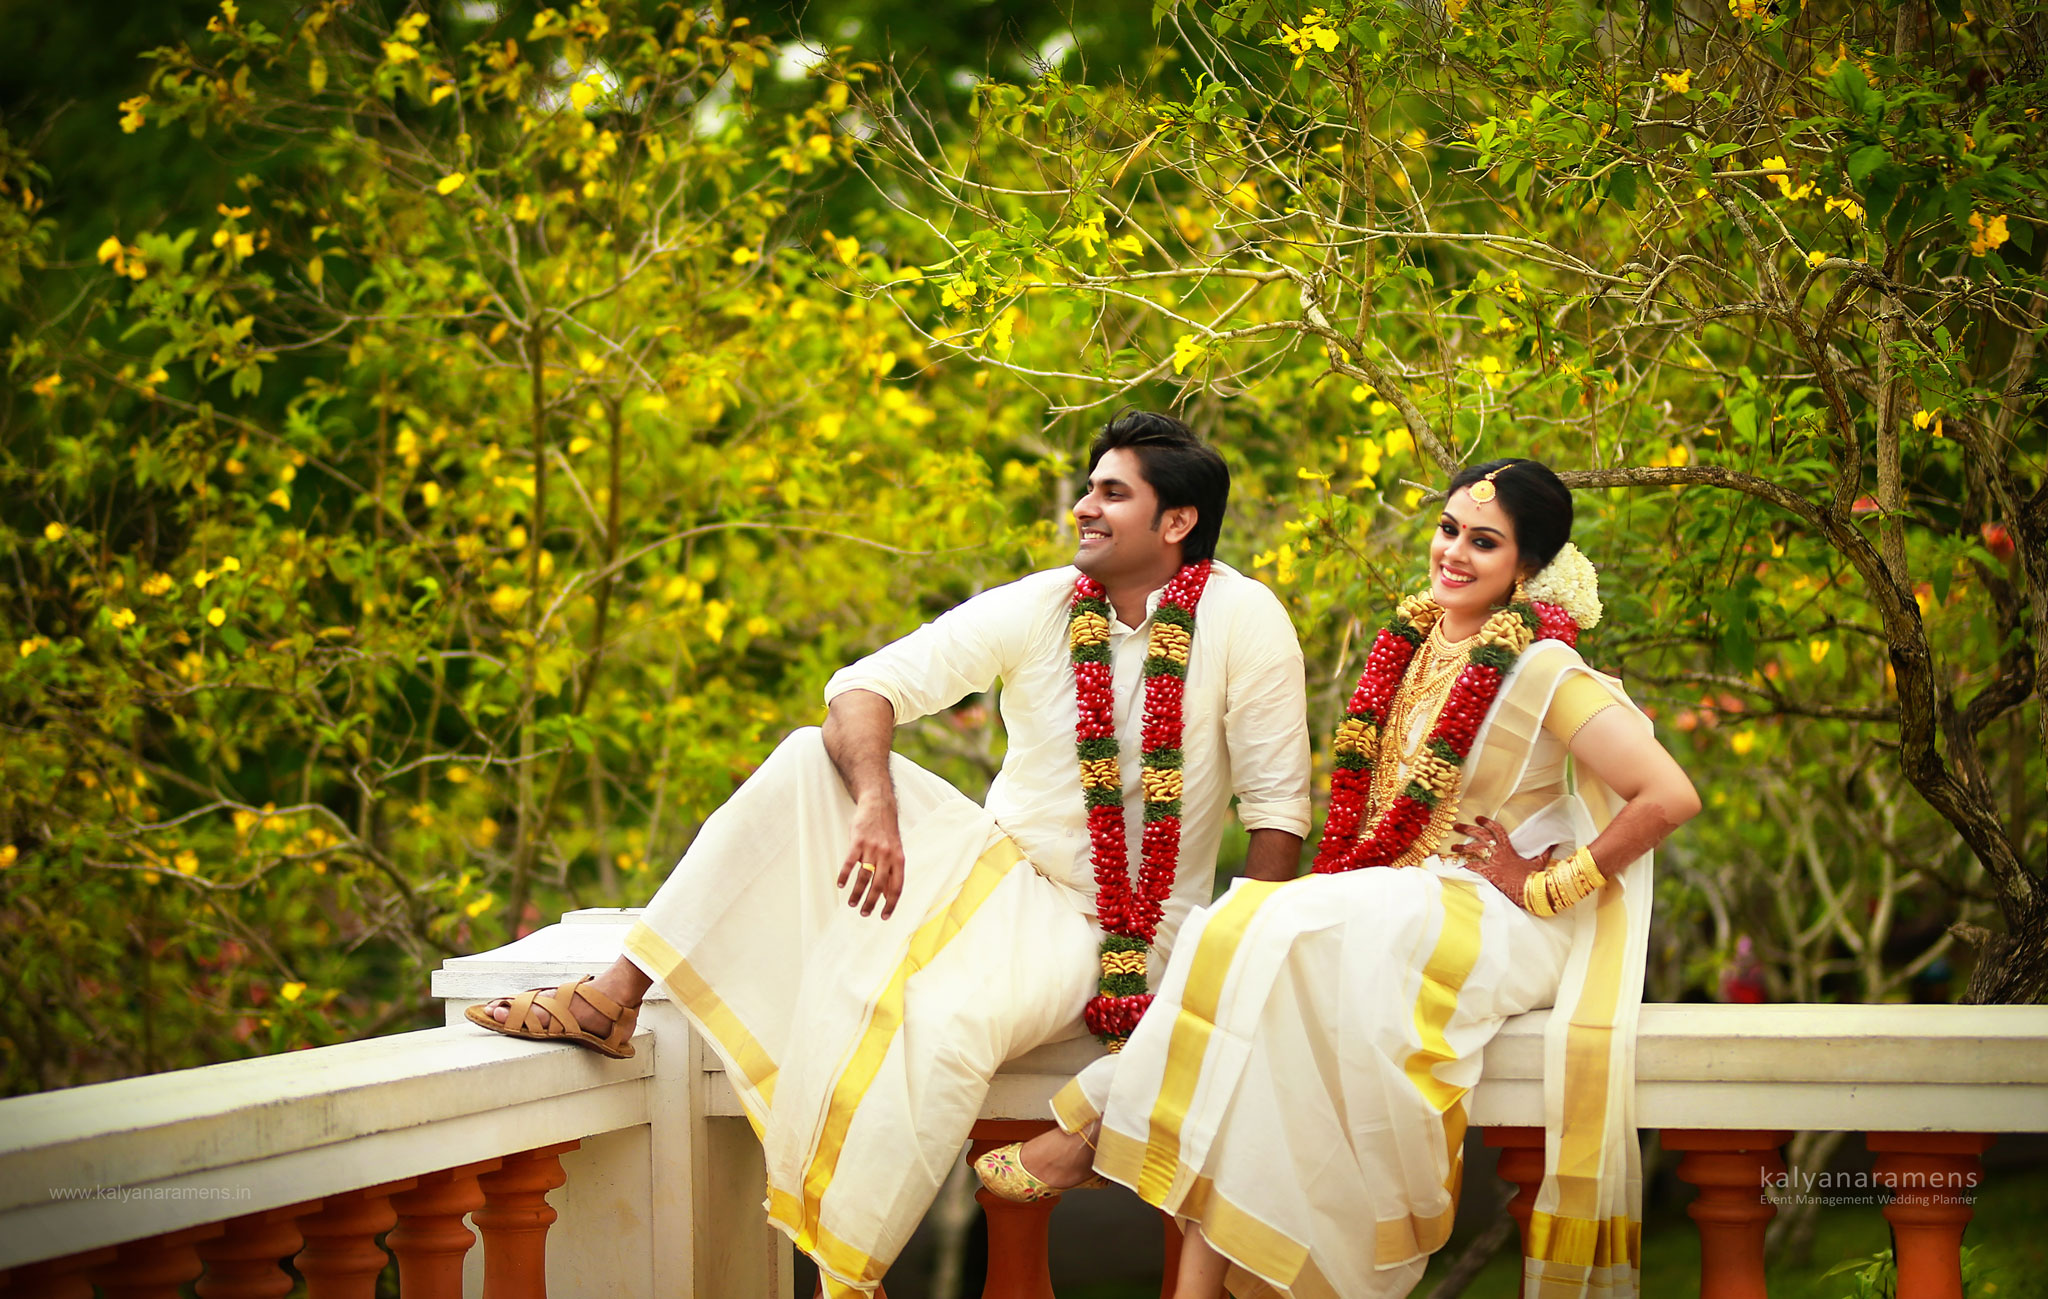 Bhavana Aneesh Wedding Photos